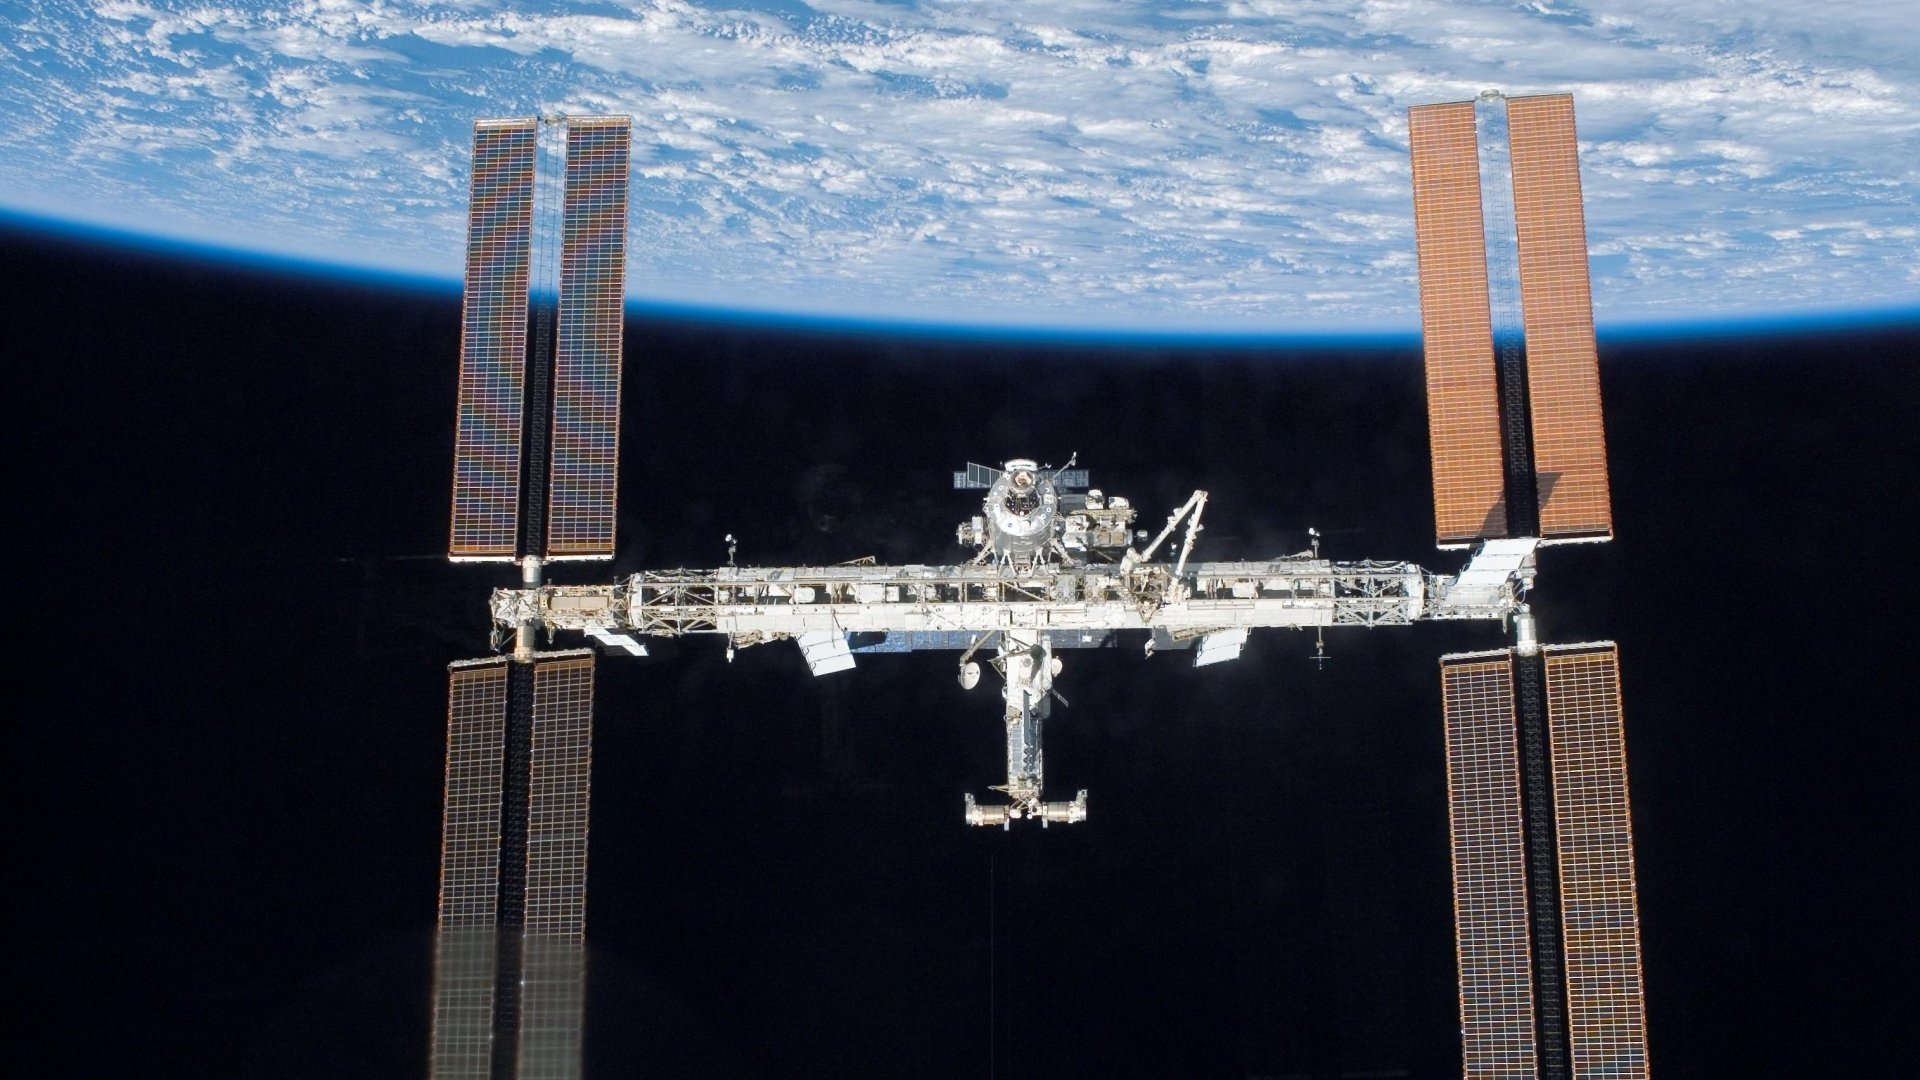 Get The Latest Ship Iss World News Pictures And Videos Learn All About From Wallpapers4uorg Your Wallpaper Source